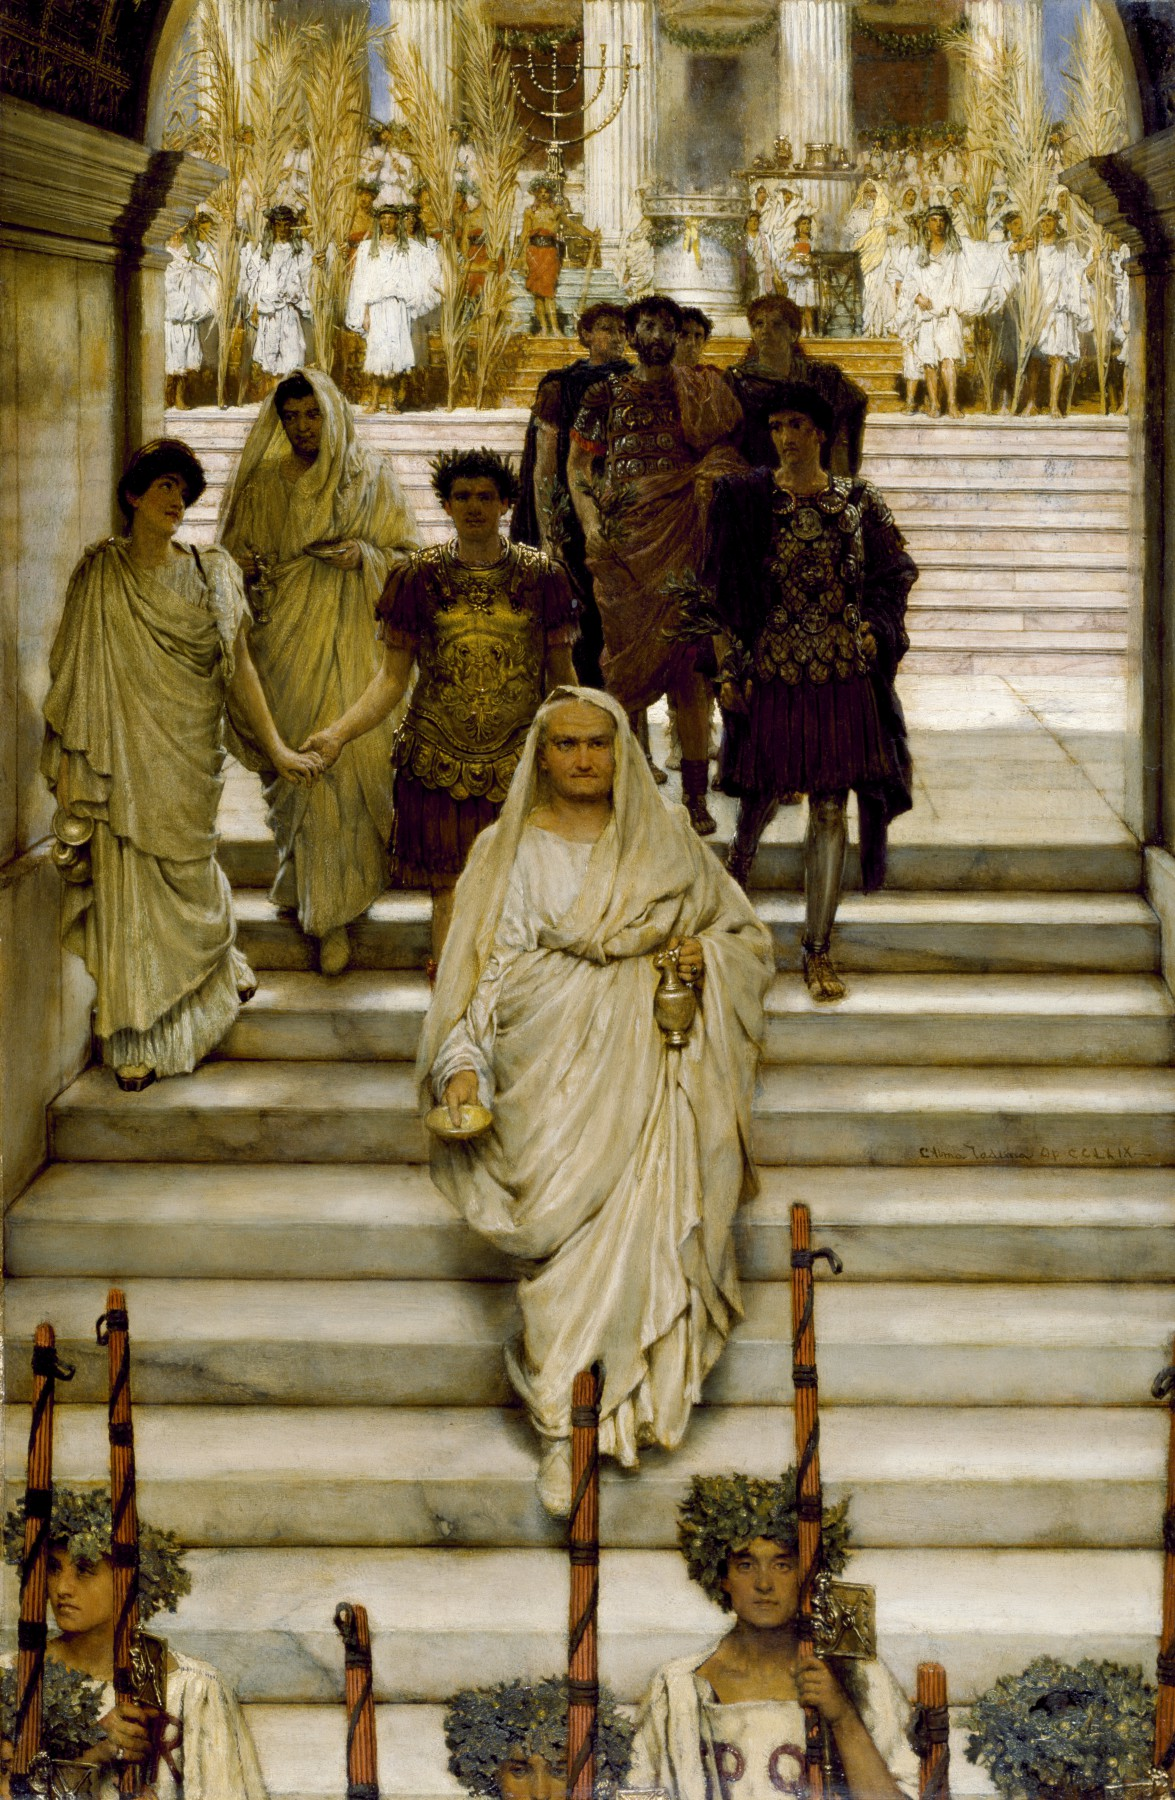 The Triumph of Titus, by Sir Lawrence Alma-Tadema (1885)